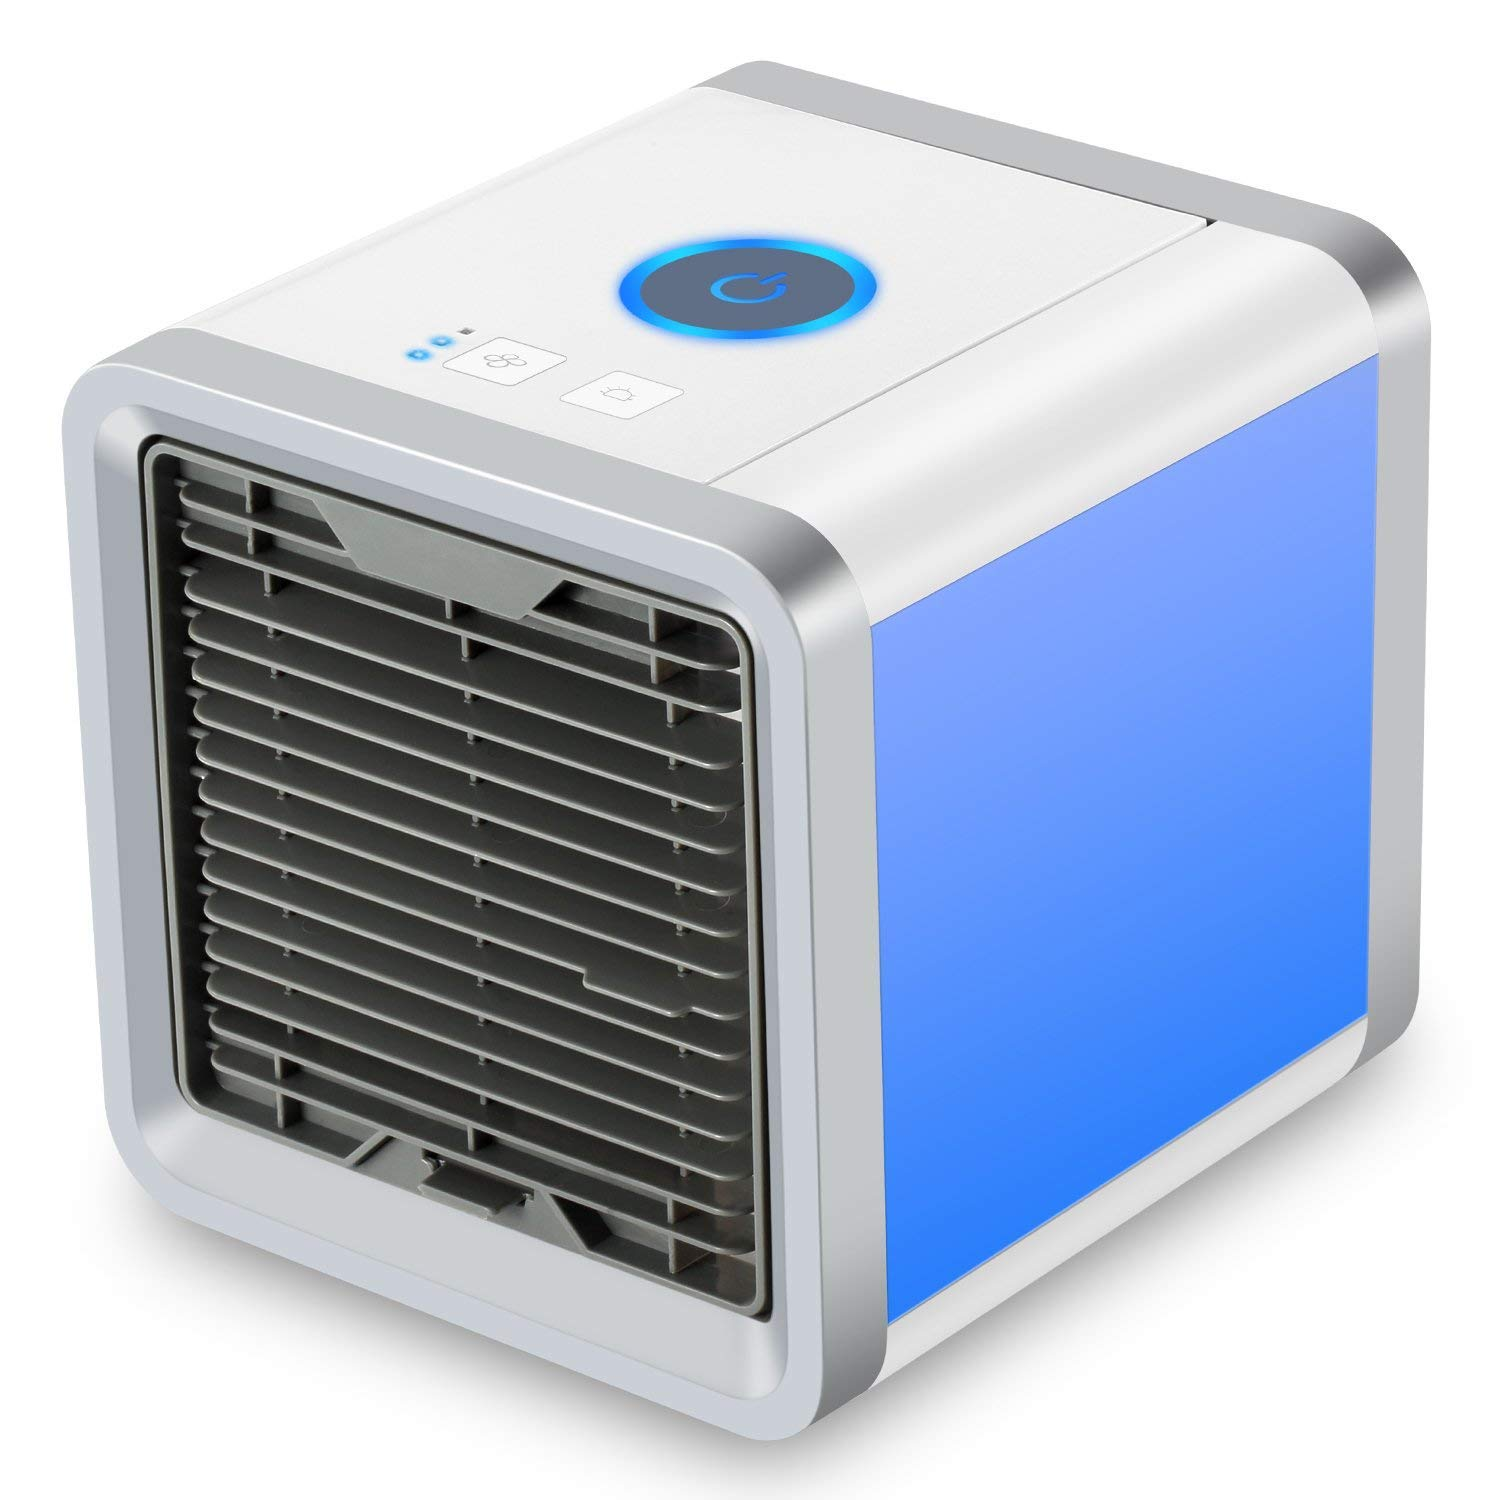 Personal Space Cooler,3 in 1 USB Mini Portable Air Conditioner Humidifier Purifier,3 Fan Speed 4 Foot Cooling Area 7 Colour LED Light for Bedroom Office Home Outdoor Travel by CAROLDEAL